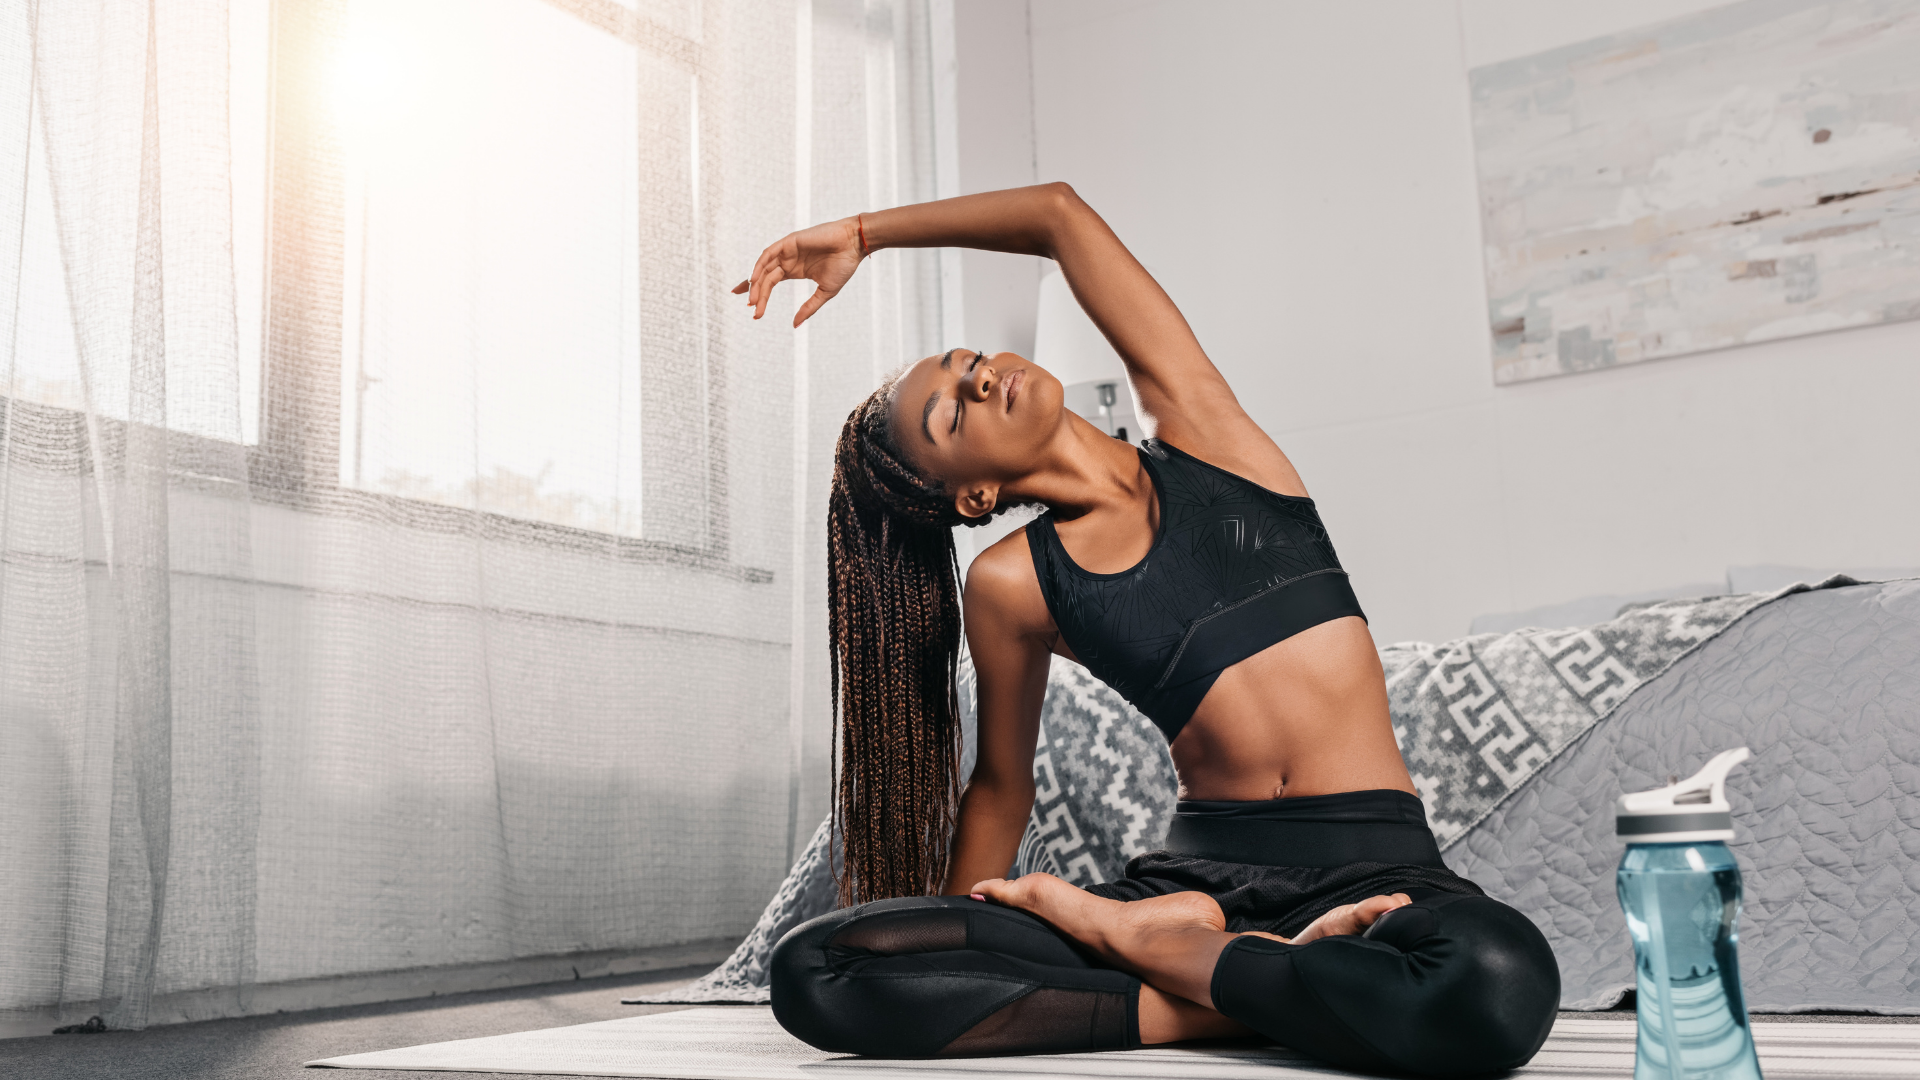 woman stretching doing mindful living practices